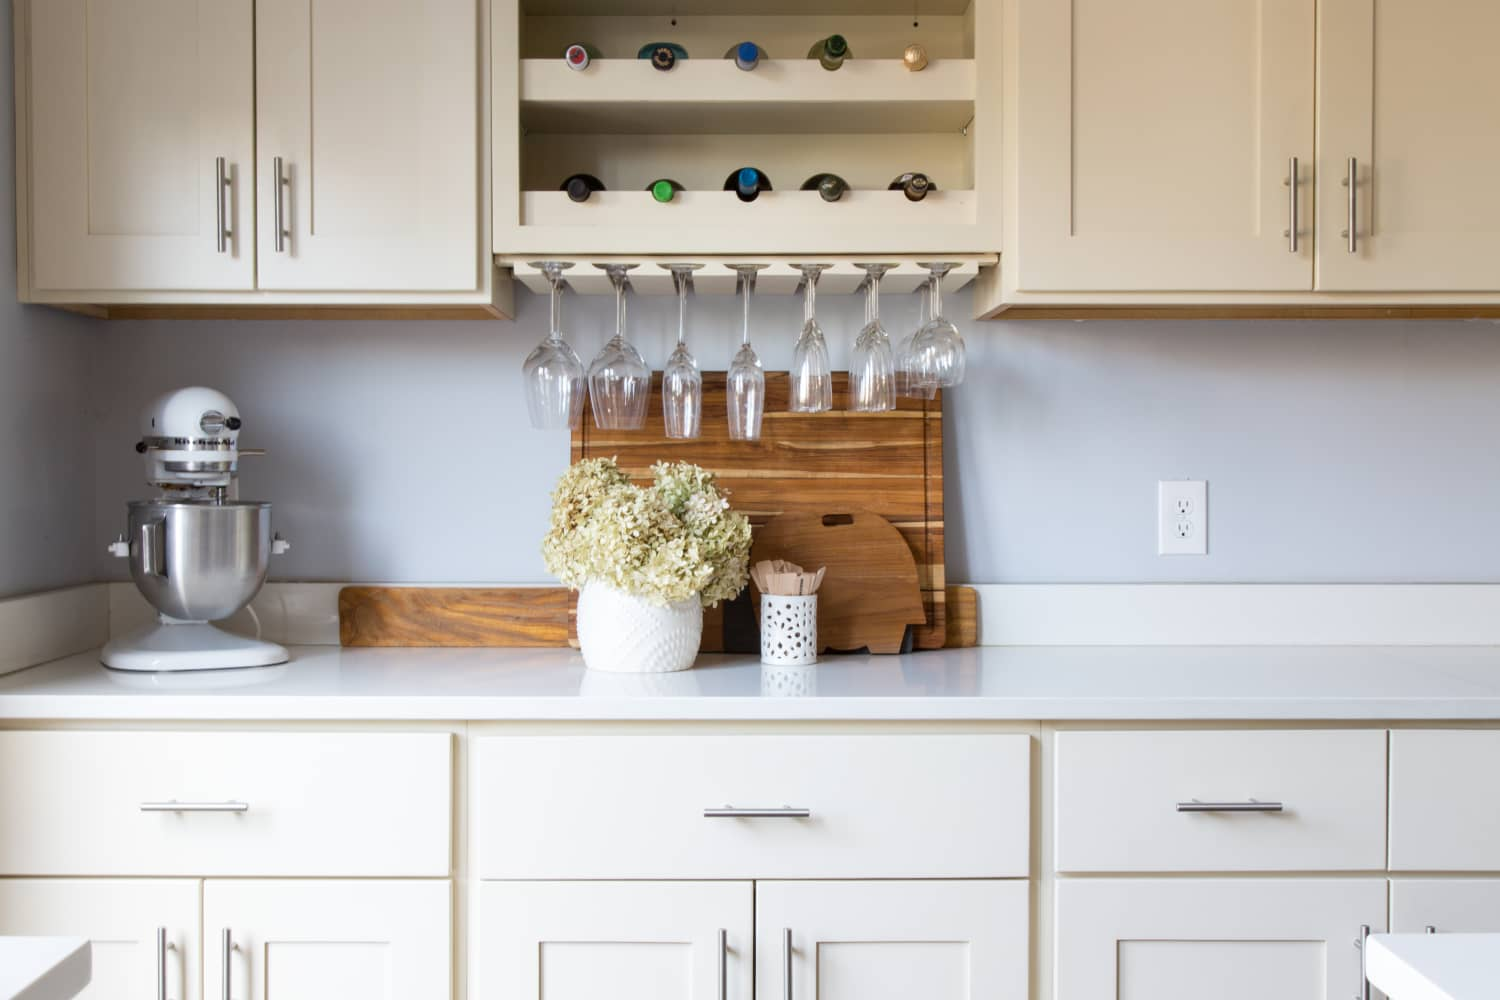 Tips For Stylishly Stocking That Open Kitchen Shelving: The 10 Commandments Of A Clutter-Free Kitchen